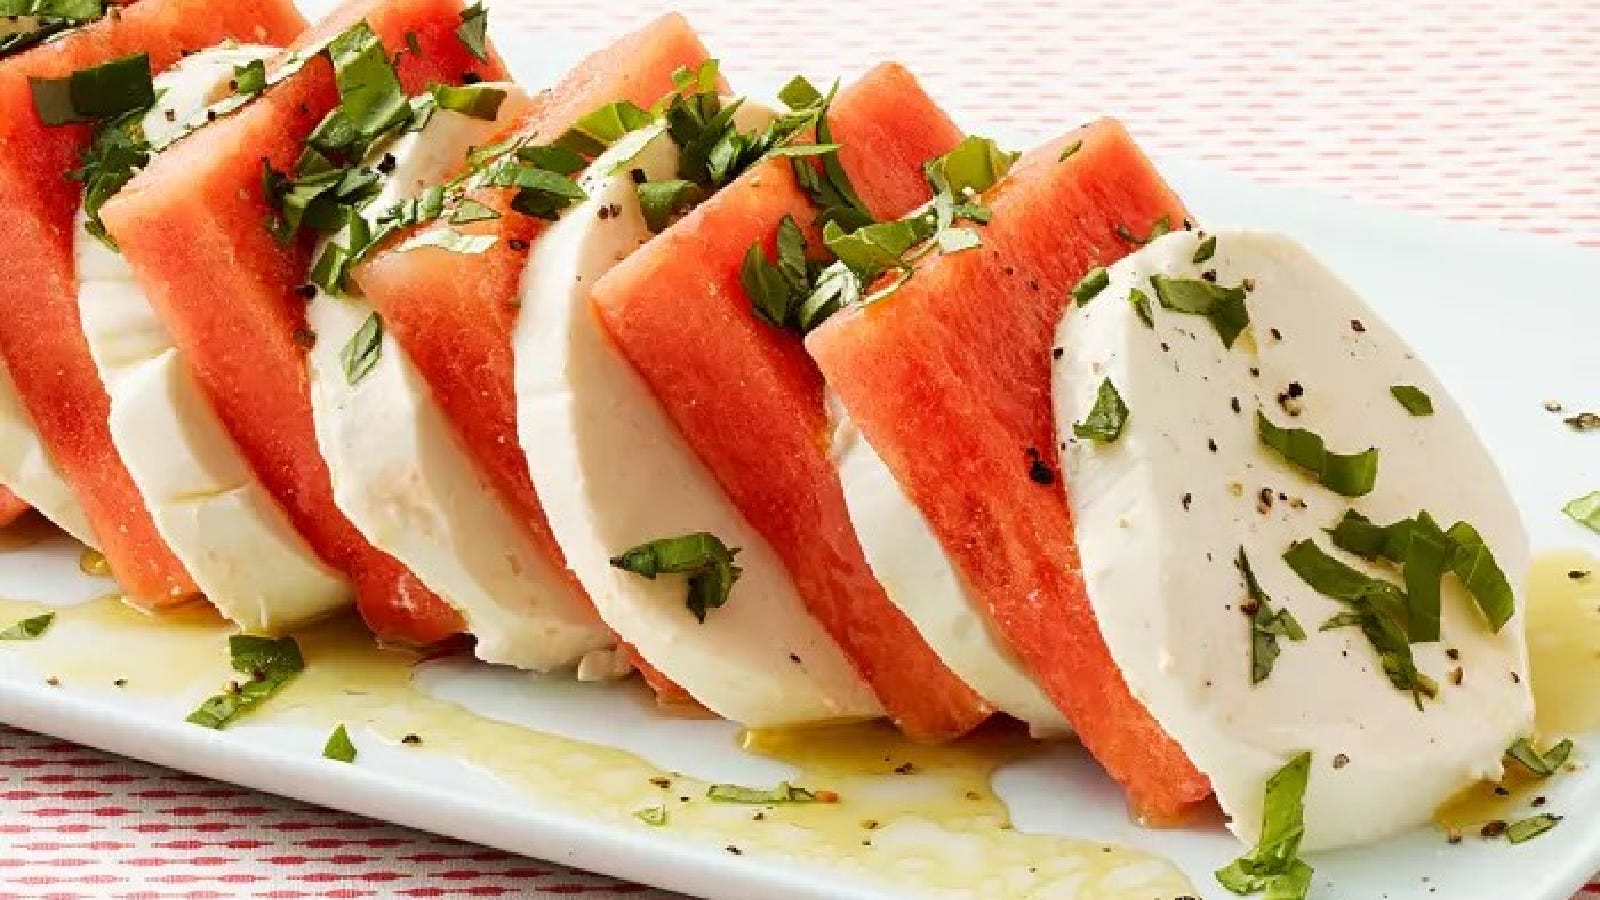 A serving plate with layered watermelon and fresh mozzarella caprese drizzled with a quick vinaigrette and garnished with chopped basil leaves.